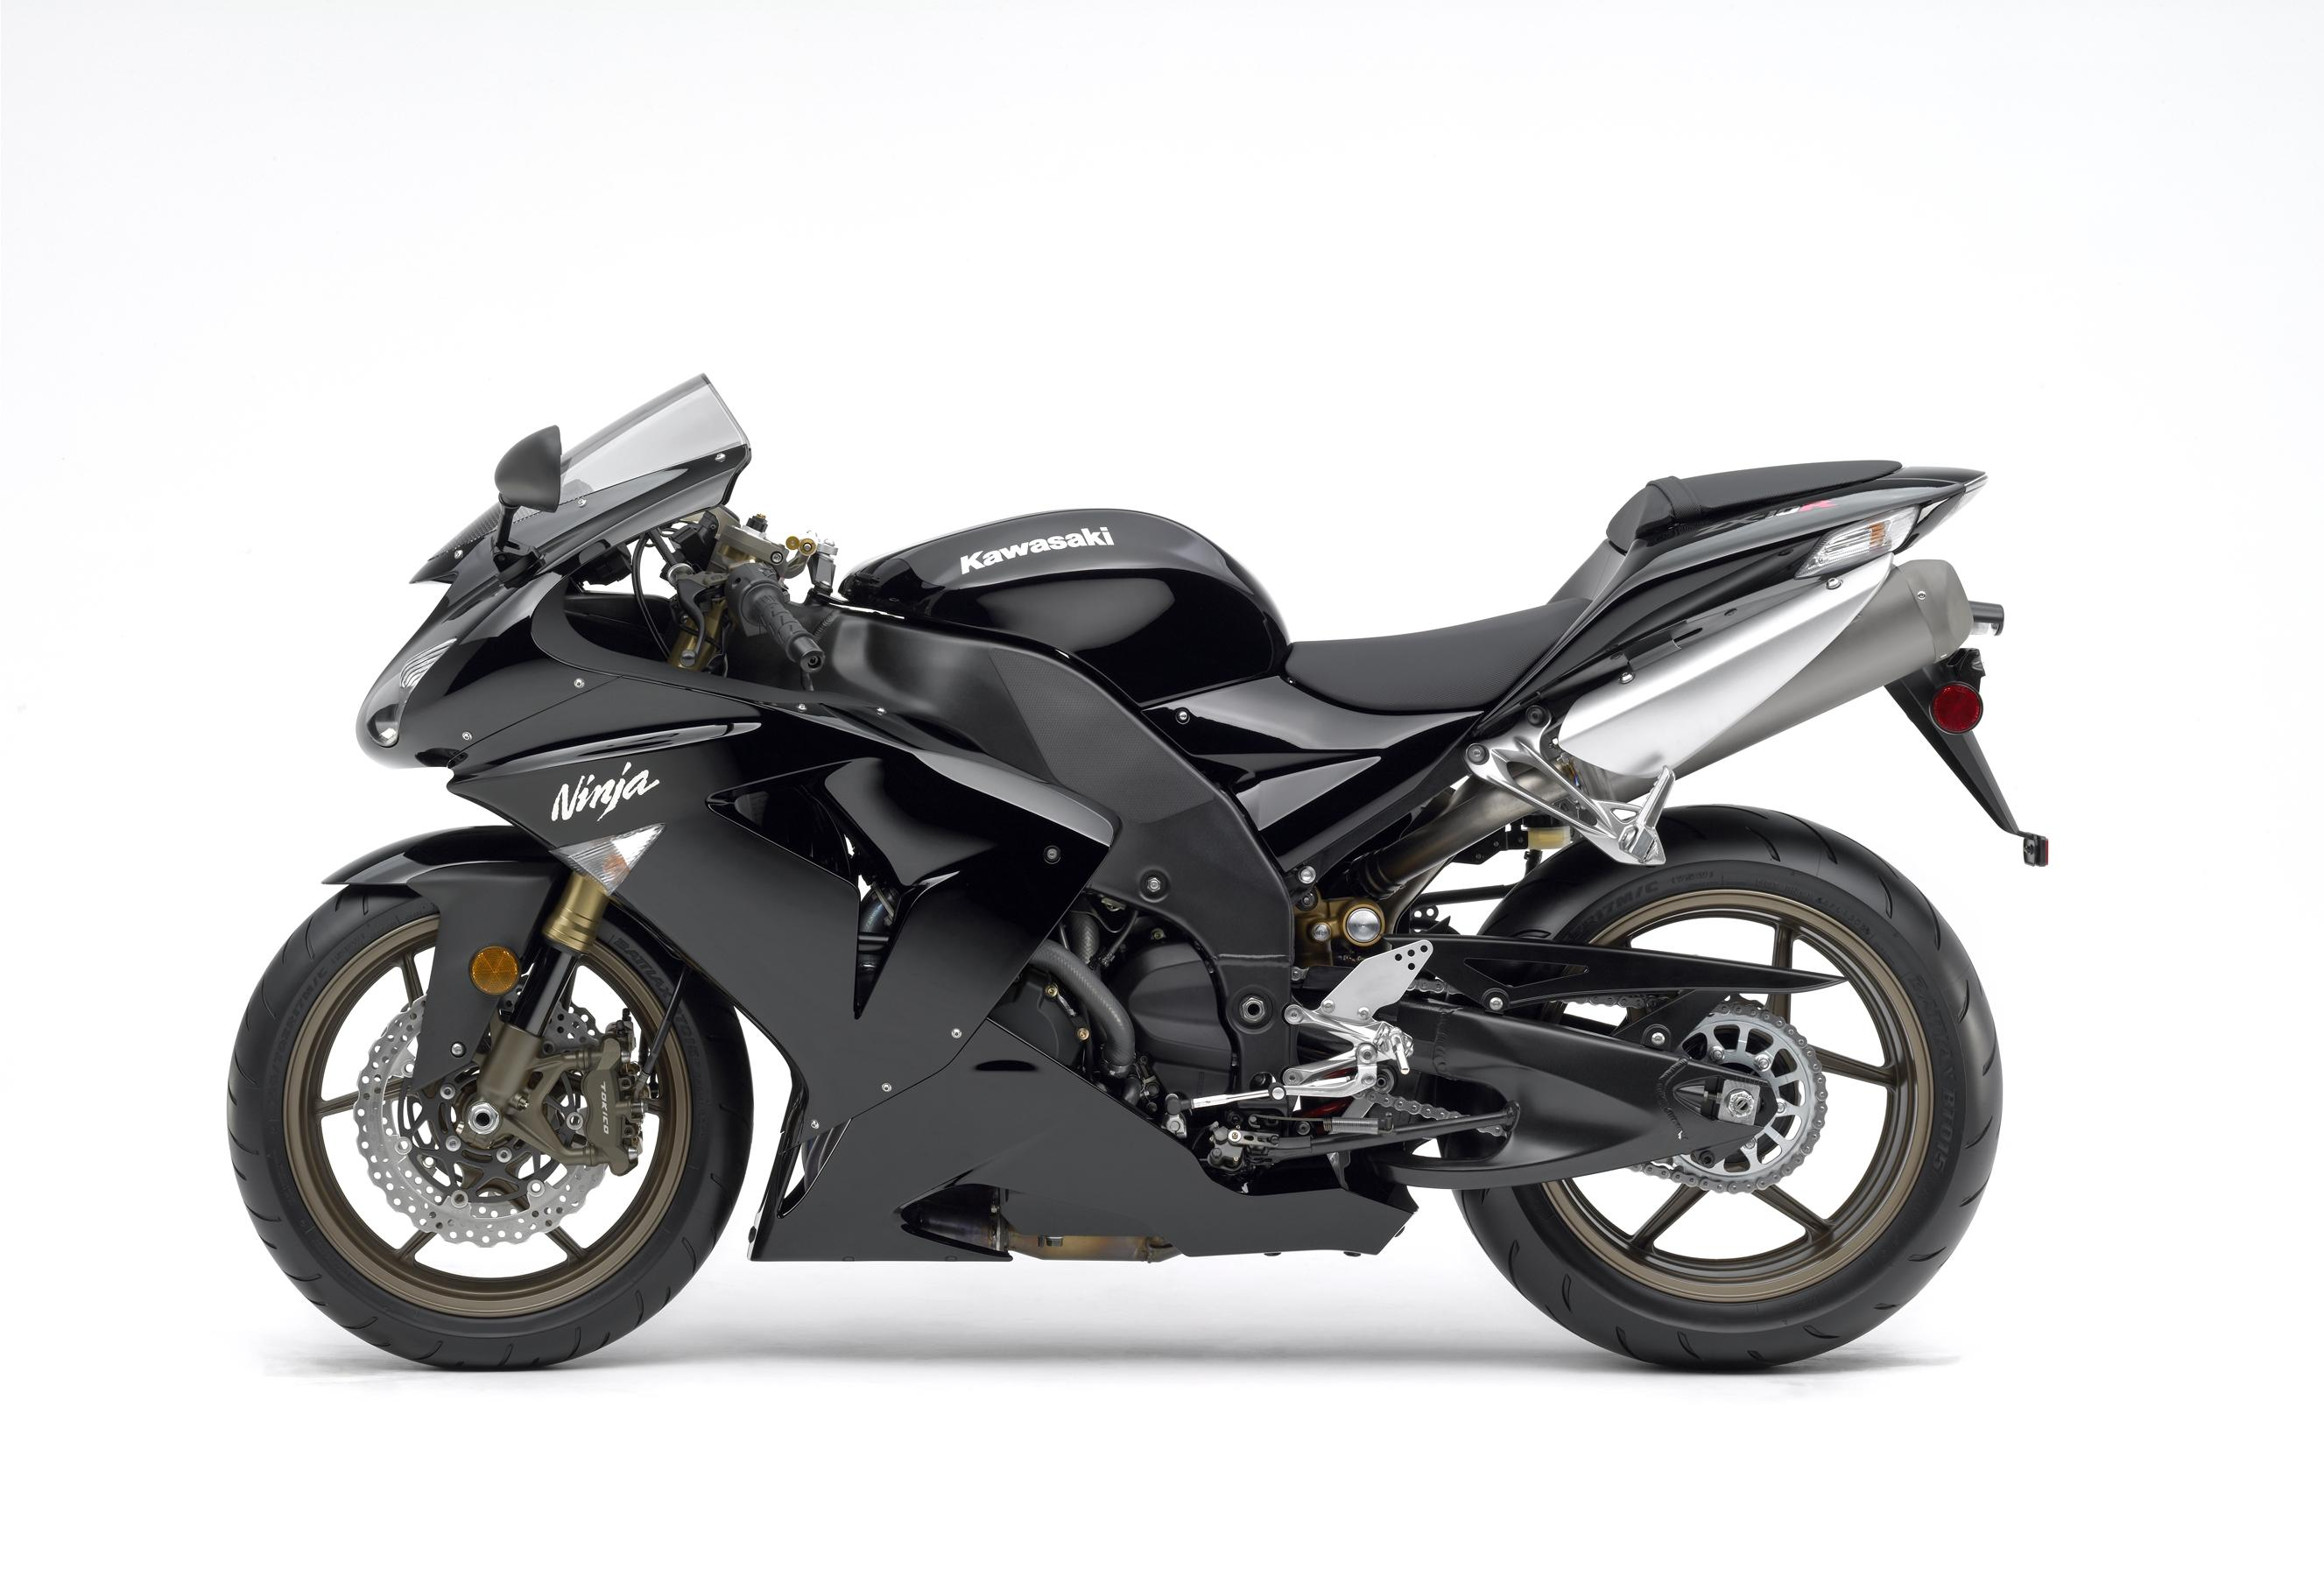 2006 Kawasaki Ninja ZX-10R | Top Speed